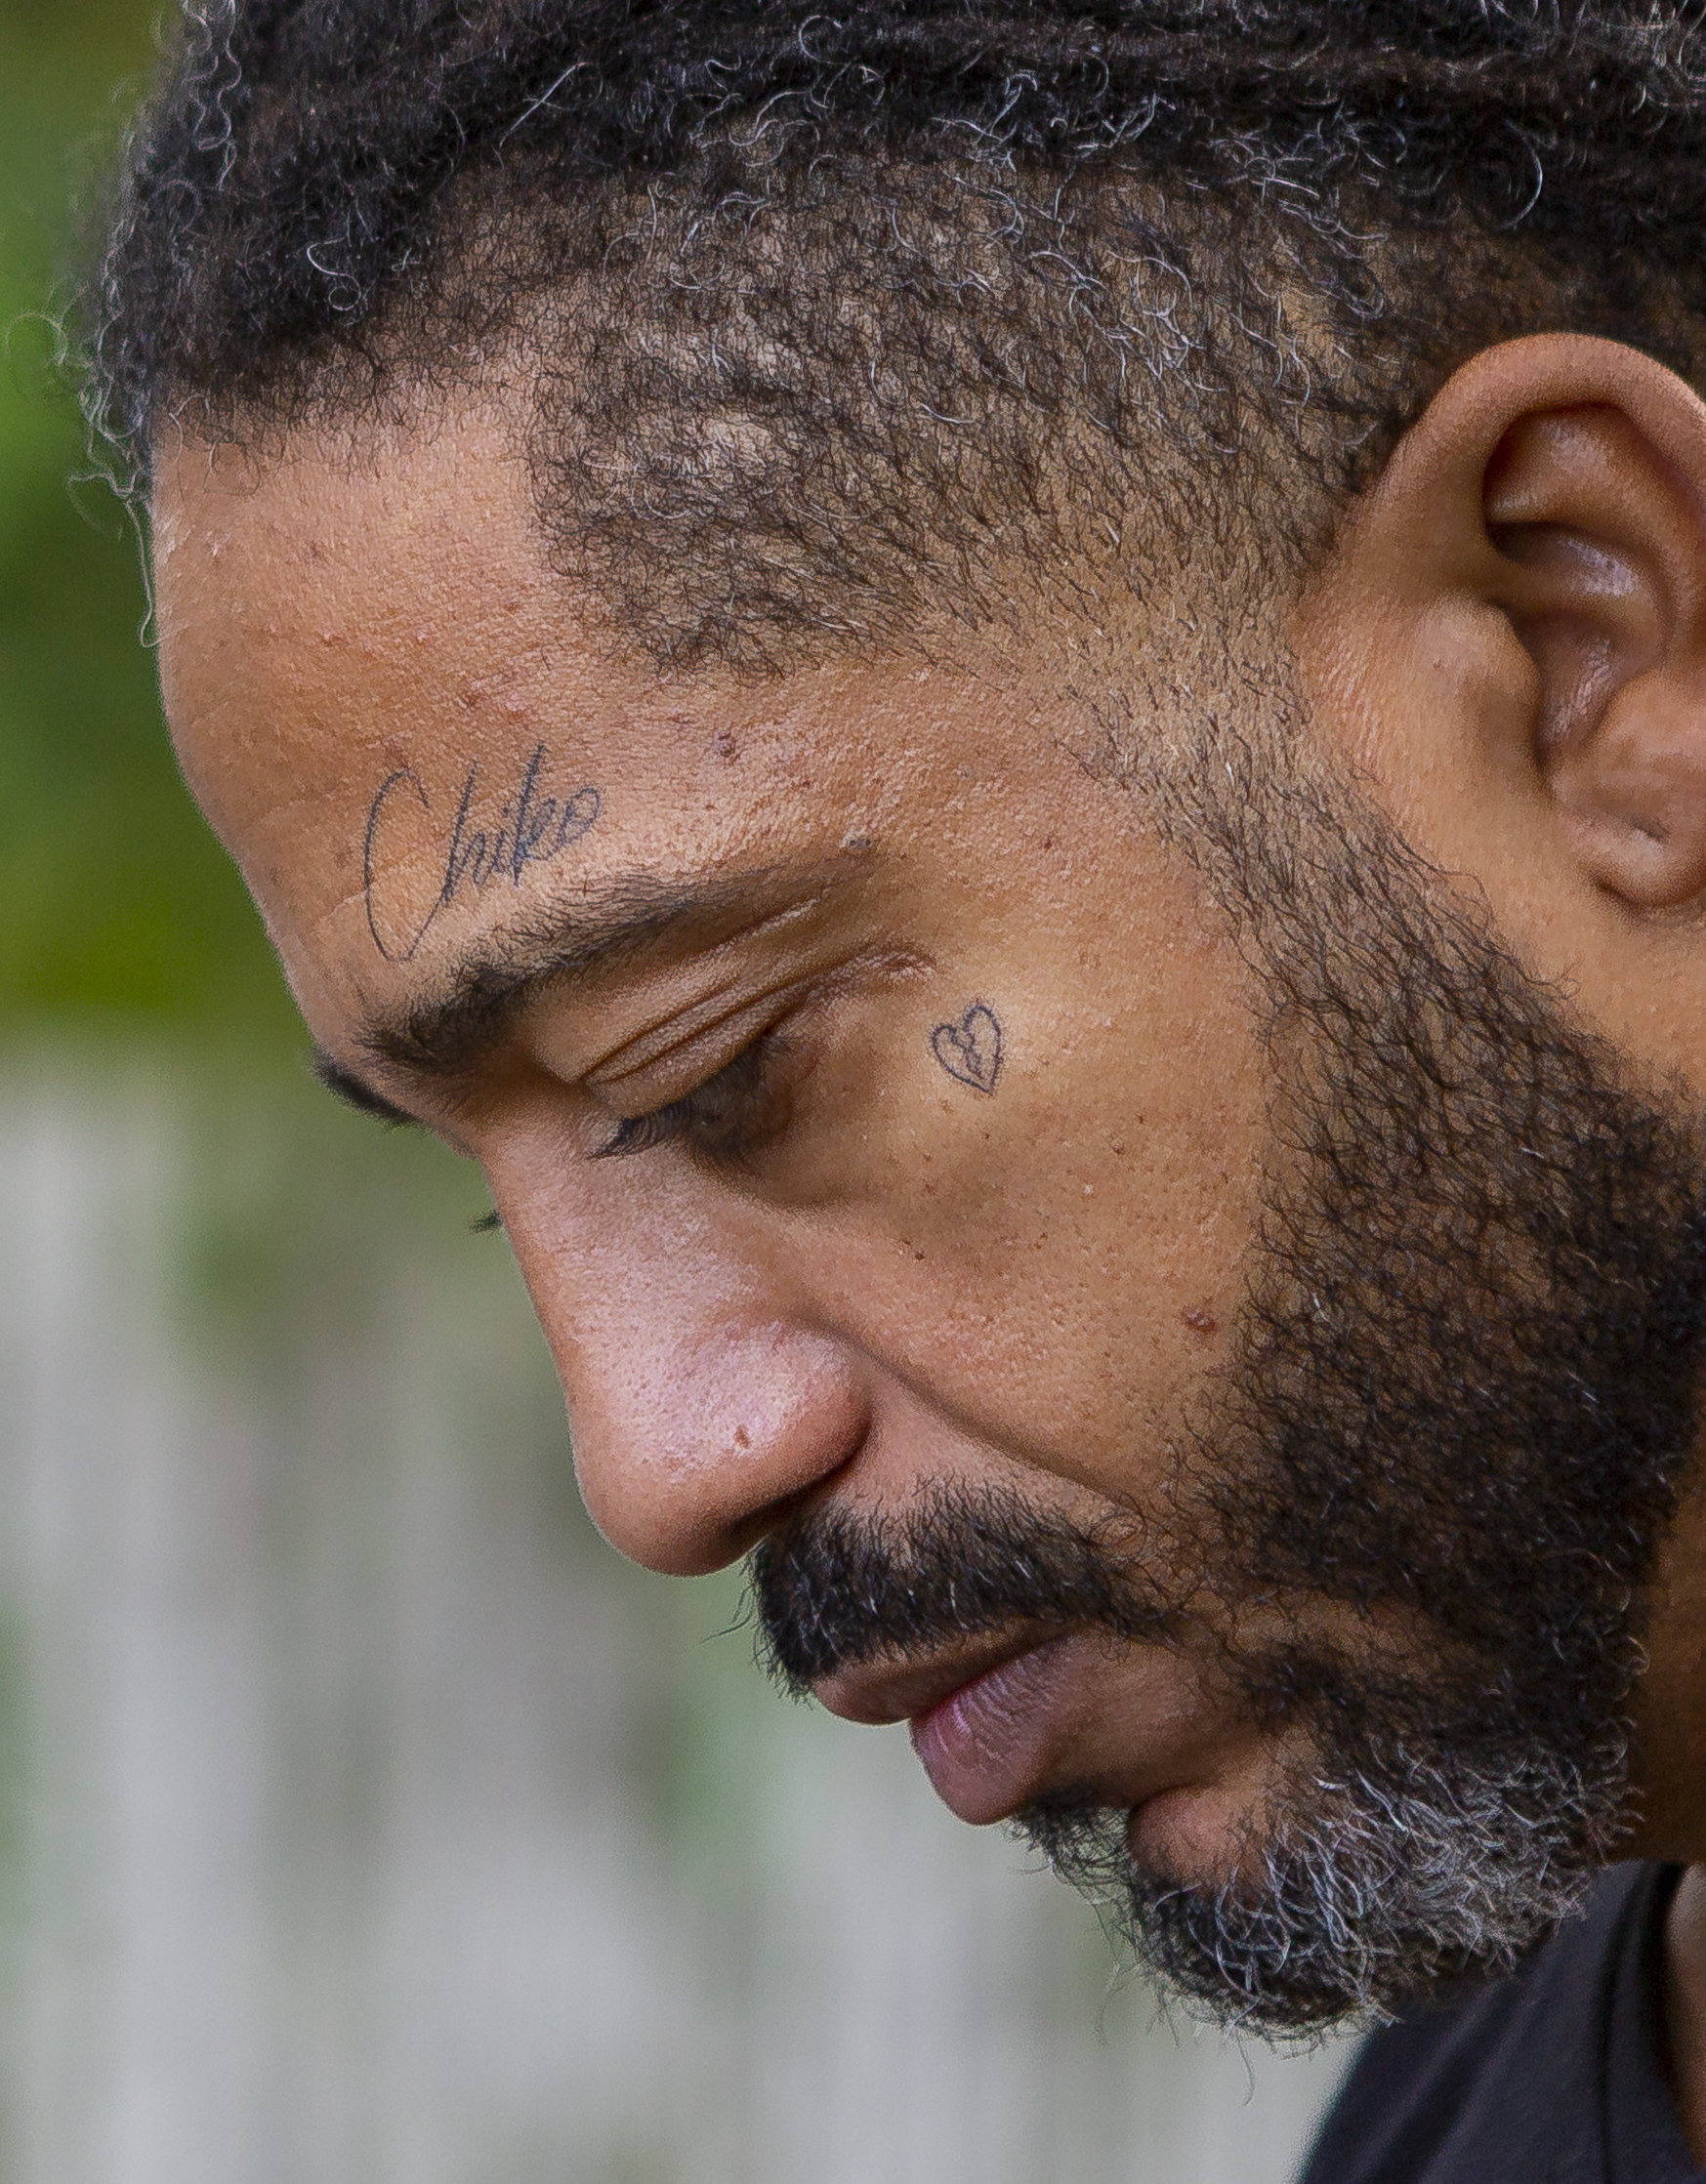 Free Rene Balbona, 39, a youth pastor, pauses for a moment in front of his home in Little Haiti on Saturday, January 19, 2019. Balbona's car and home were sprayed with bullets when his house got shot on November 28, 2018. Balbona's son, Isaiah, was killed on December 28, 2018 inside a car in Opa-locka.